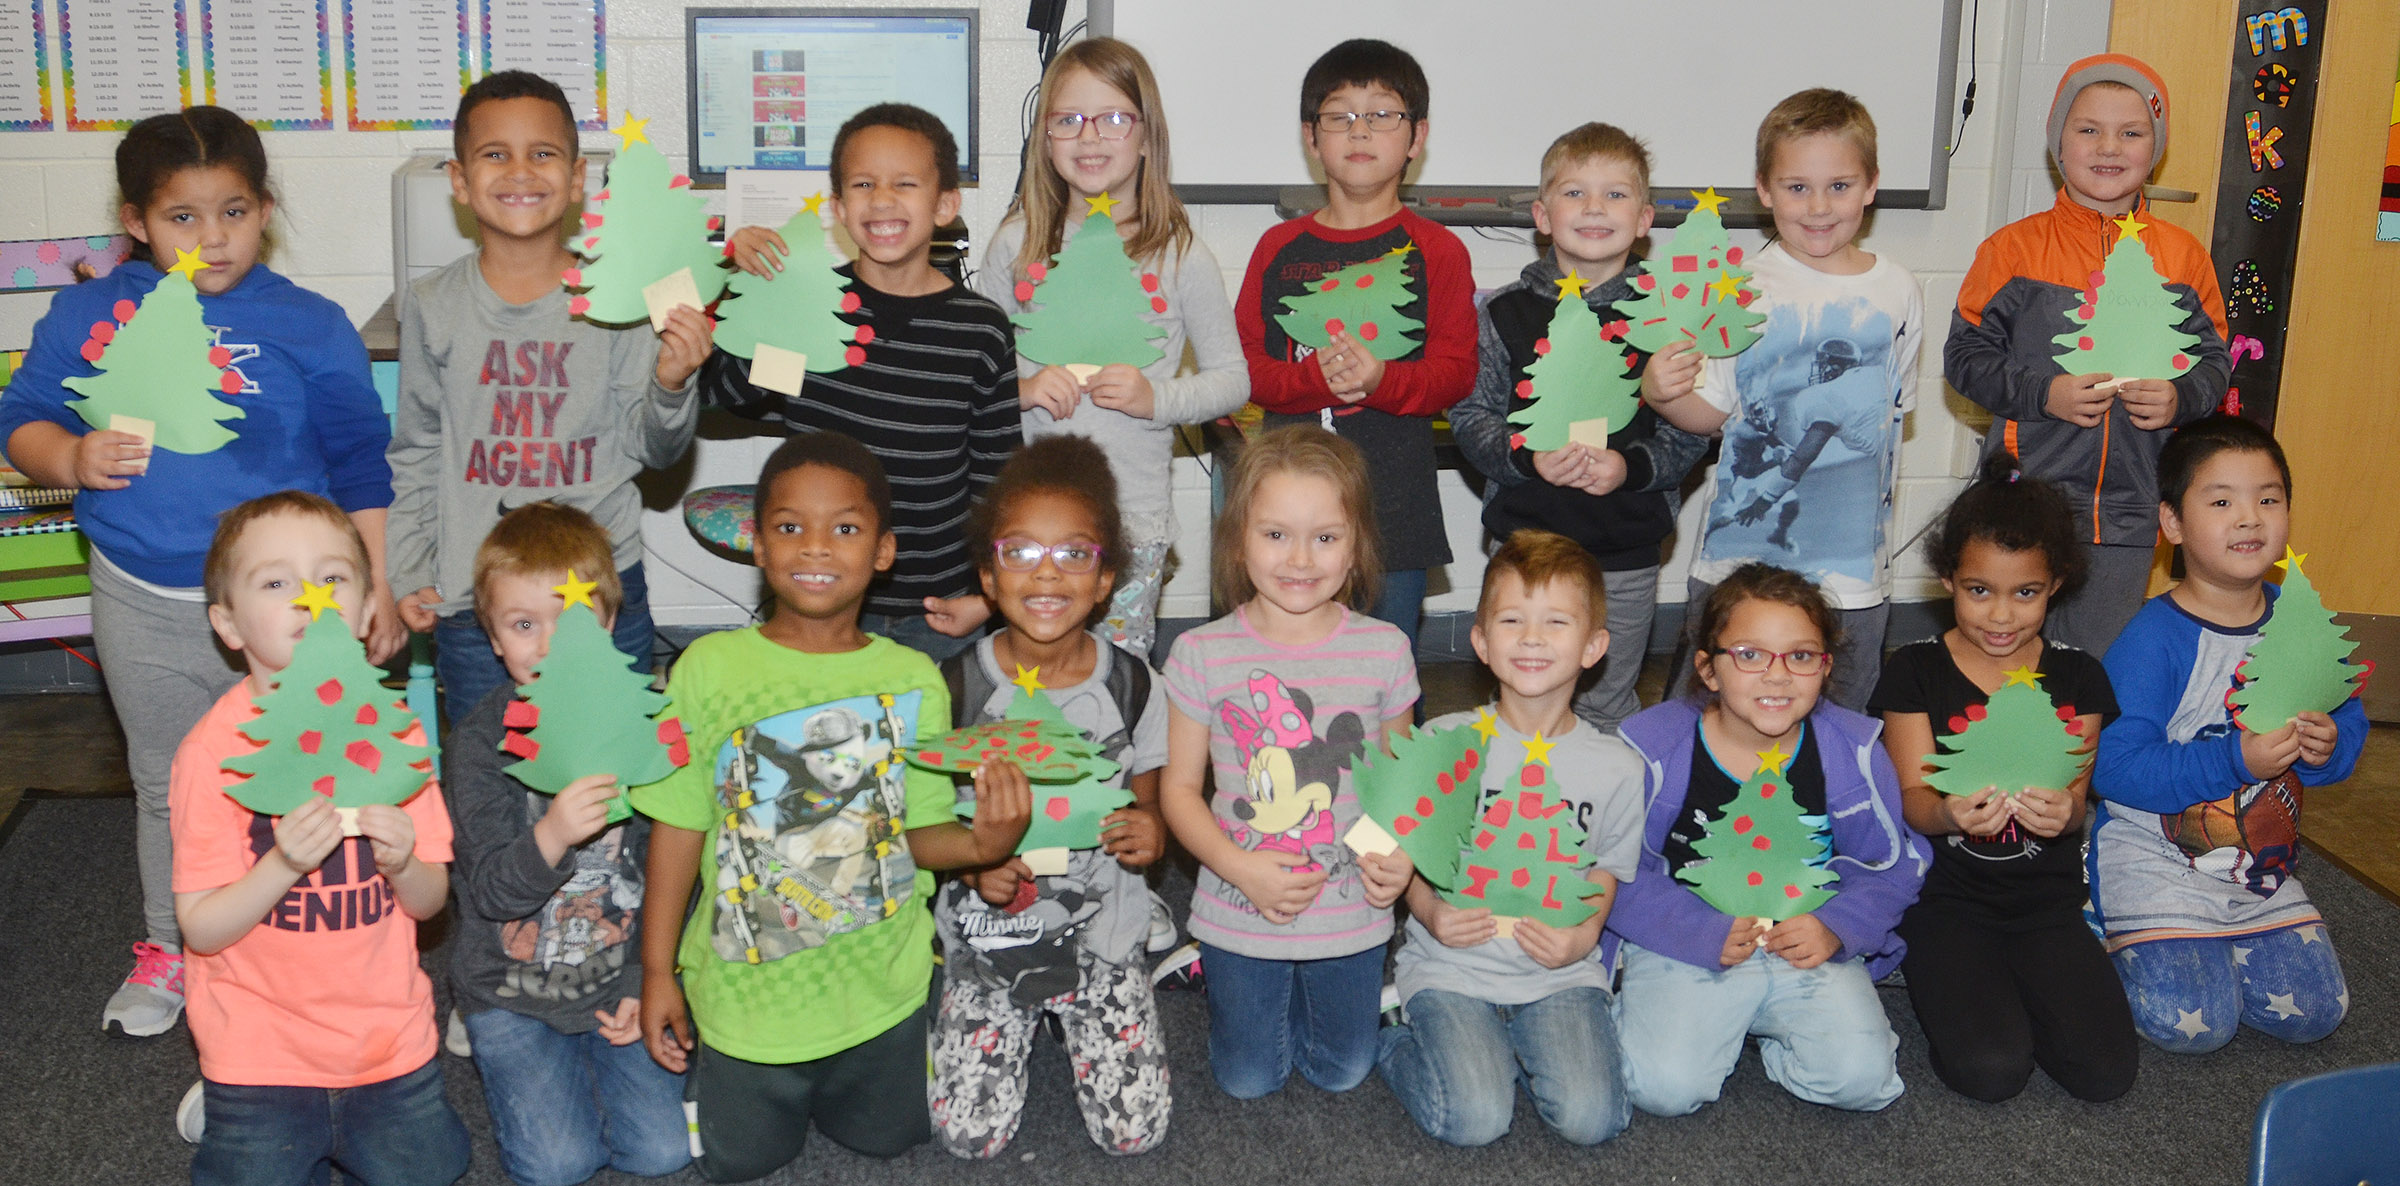 CES Wings Express kindergarten students hold their Christmas trees. From left, front, are Joshua Dickens, Alex Newcomb, Kaiyden Vancleave, Daya Griffin, Miyah Learmond, Andrew Stout, Addisyn Taylor, Rylee Karr and William Li. Back, Tatum Hoskins, Kingston Cowherd, Jaxon Williams, Emmaline Vespie, Victrin Ramsey, Landry Brown, Jacob Sandidge and Dawson Morton.